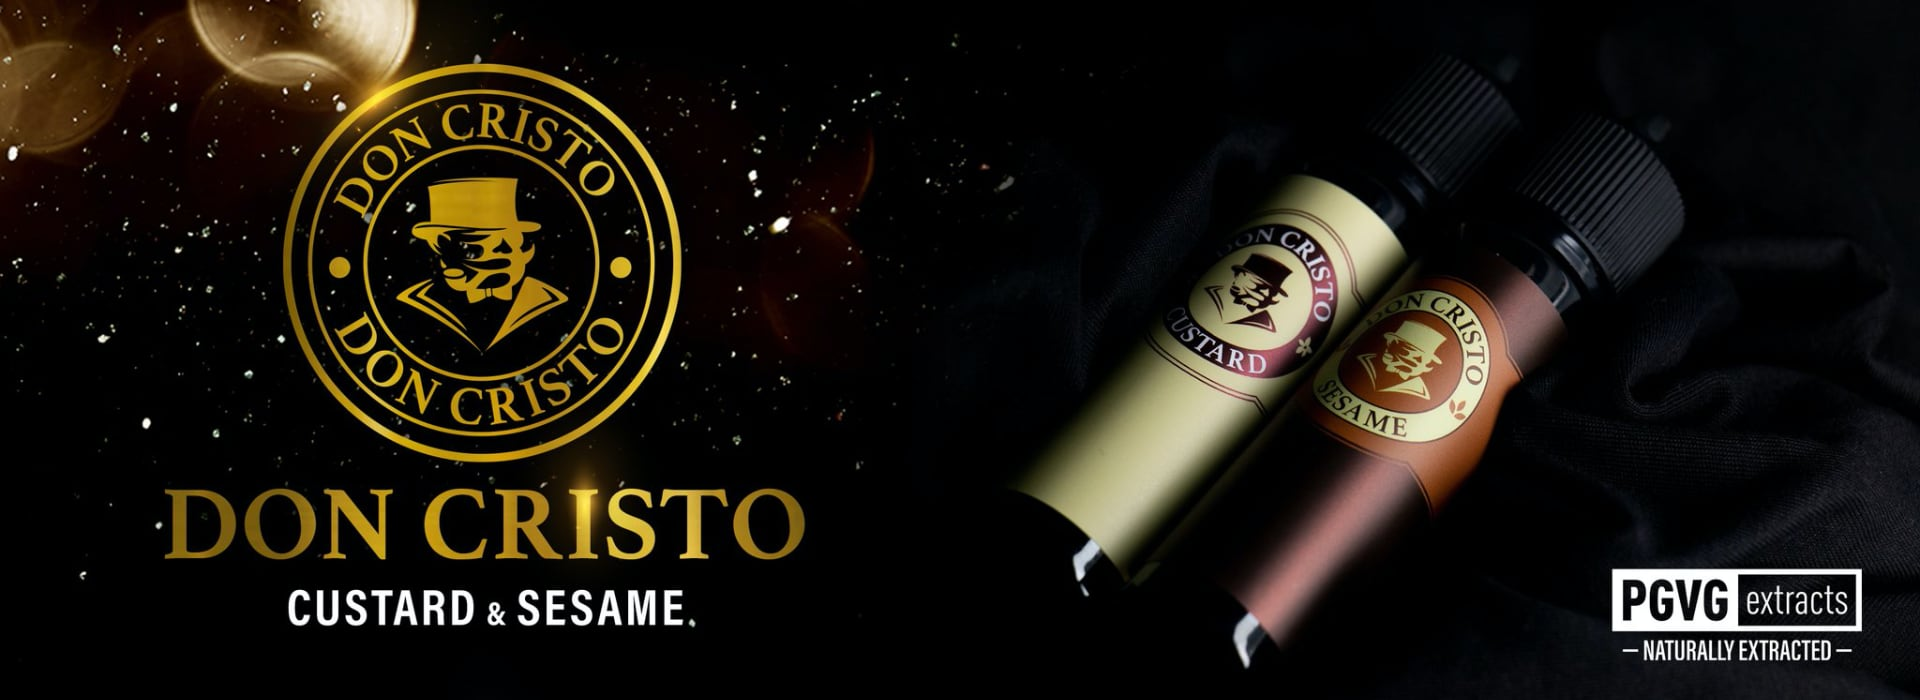 New Don Cristo Sesame and Custard eJuices